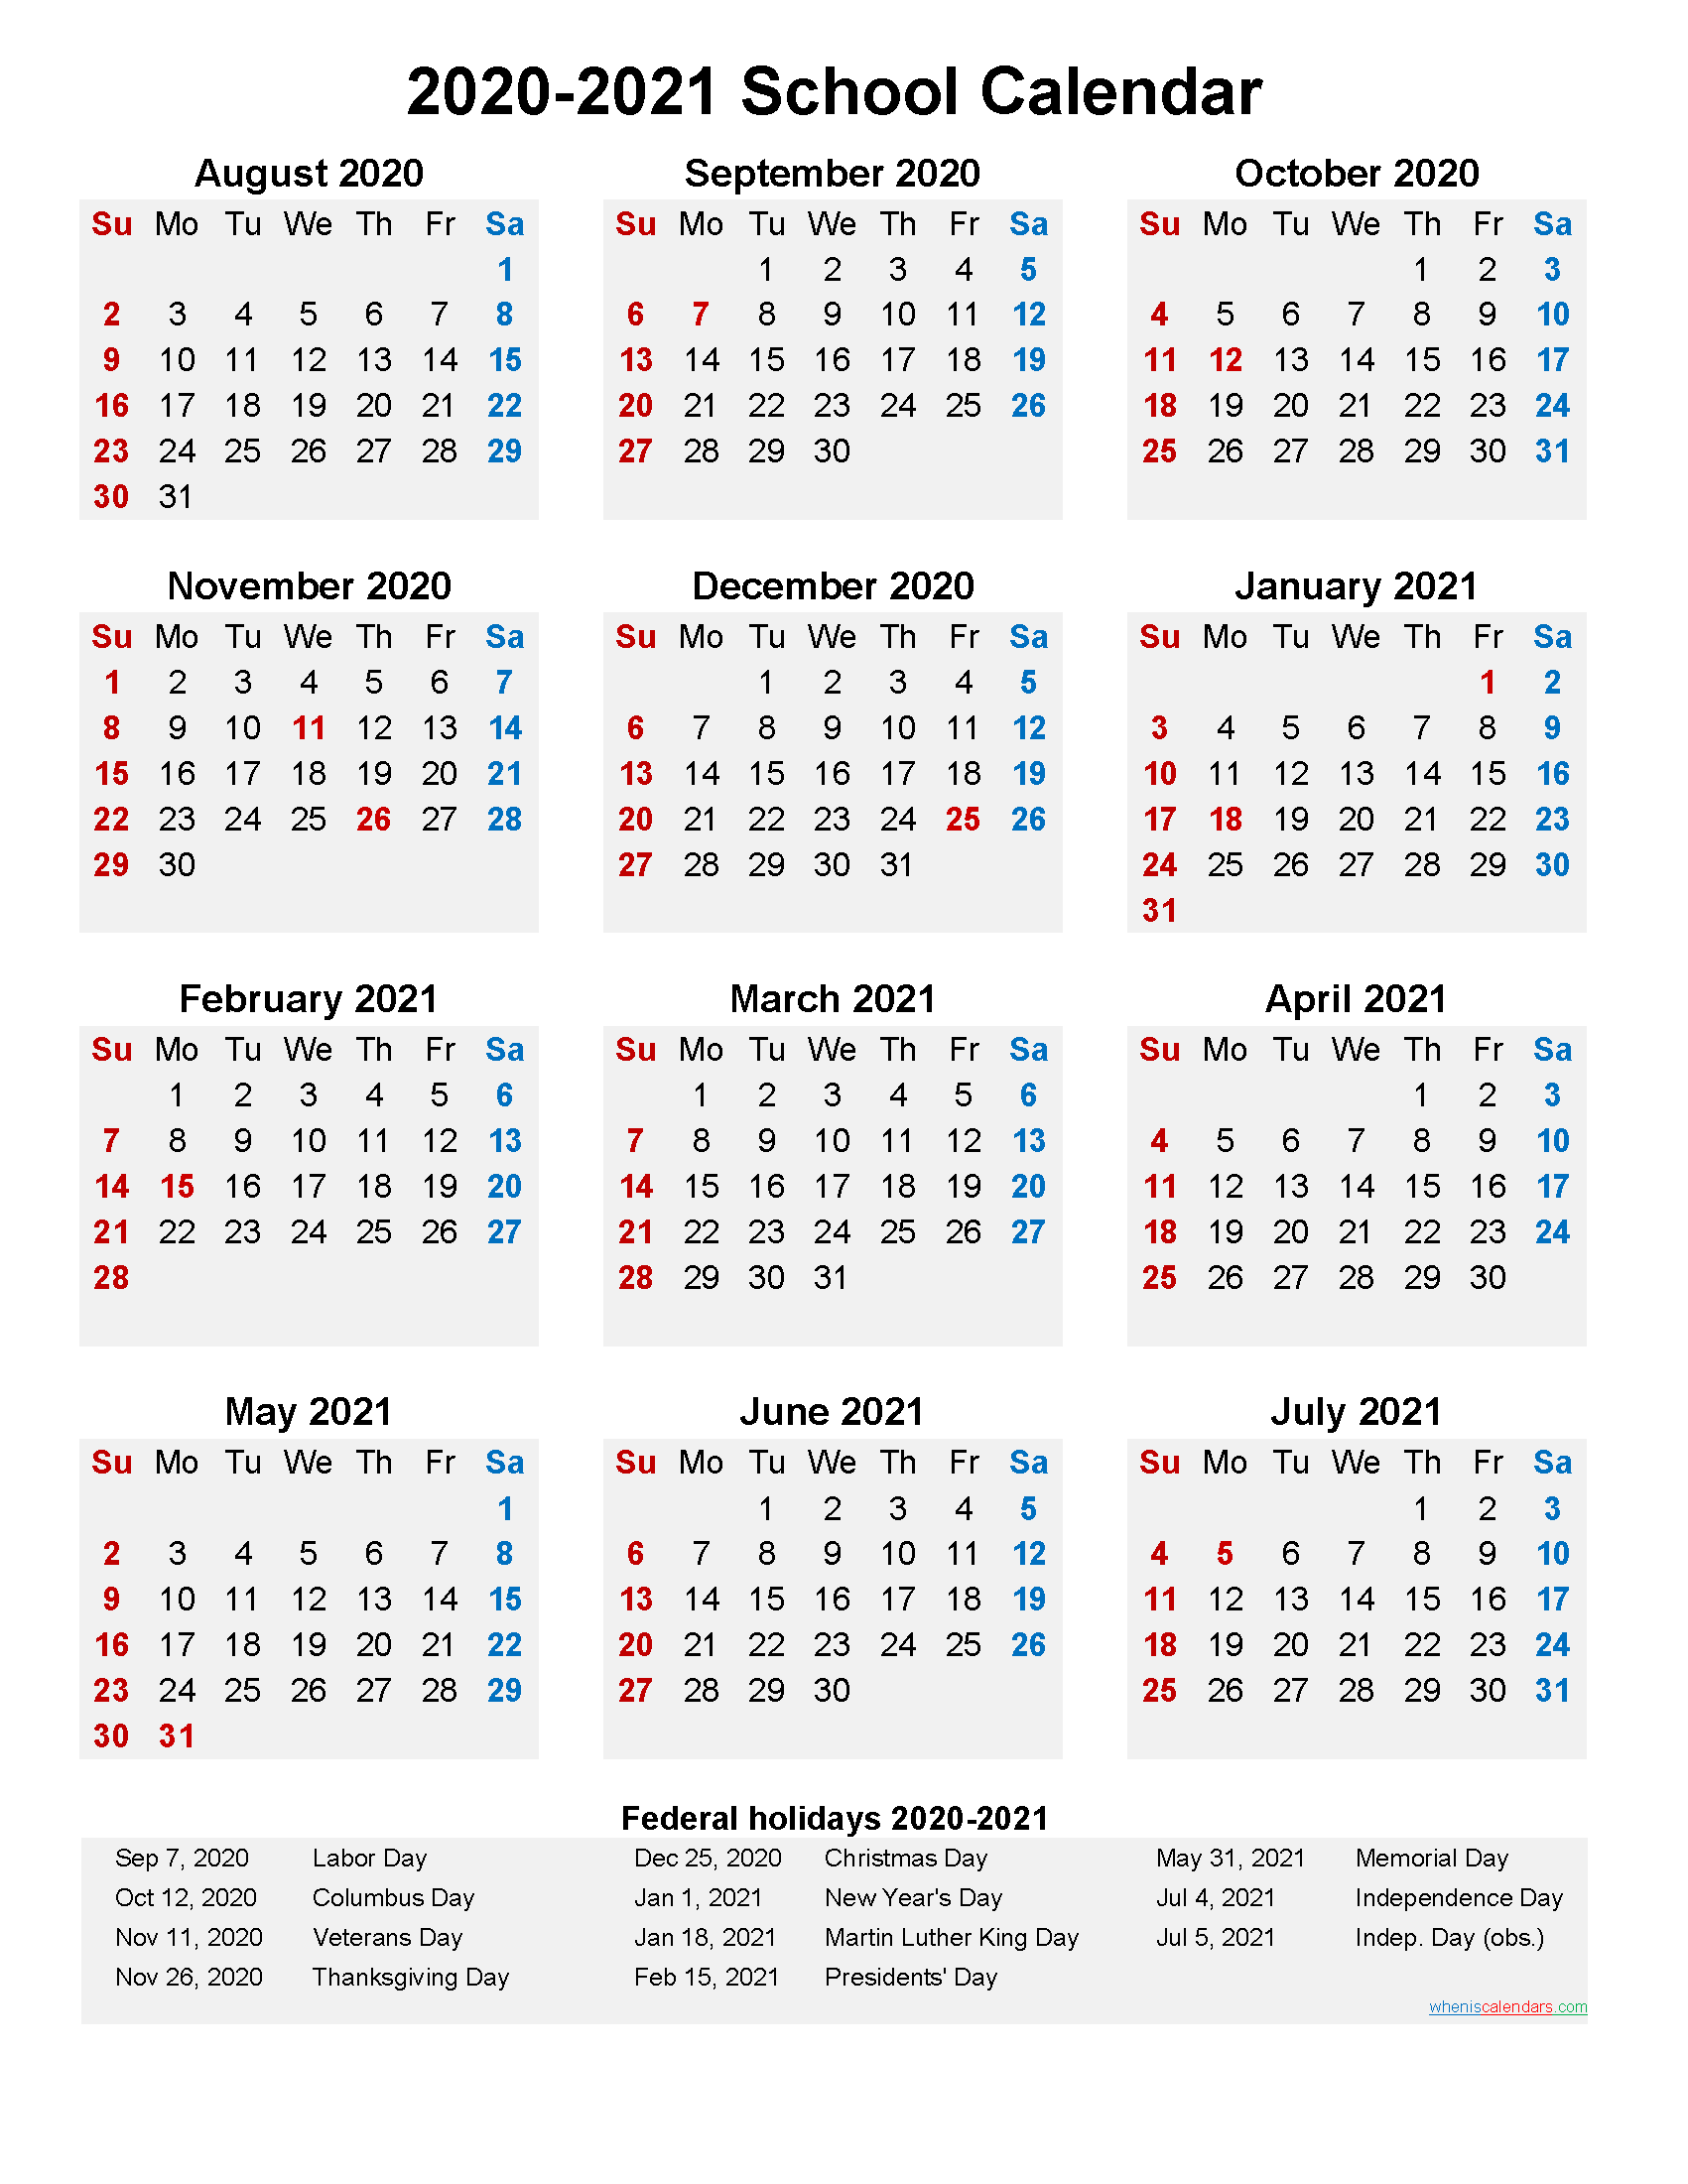 2020 and 2021 School Calendar Printable